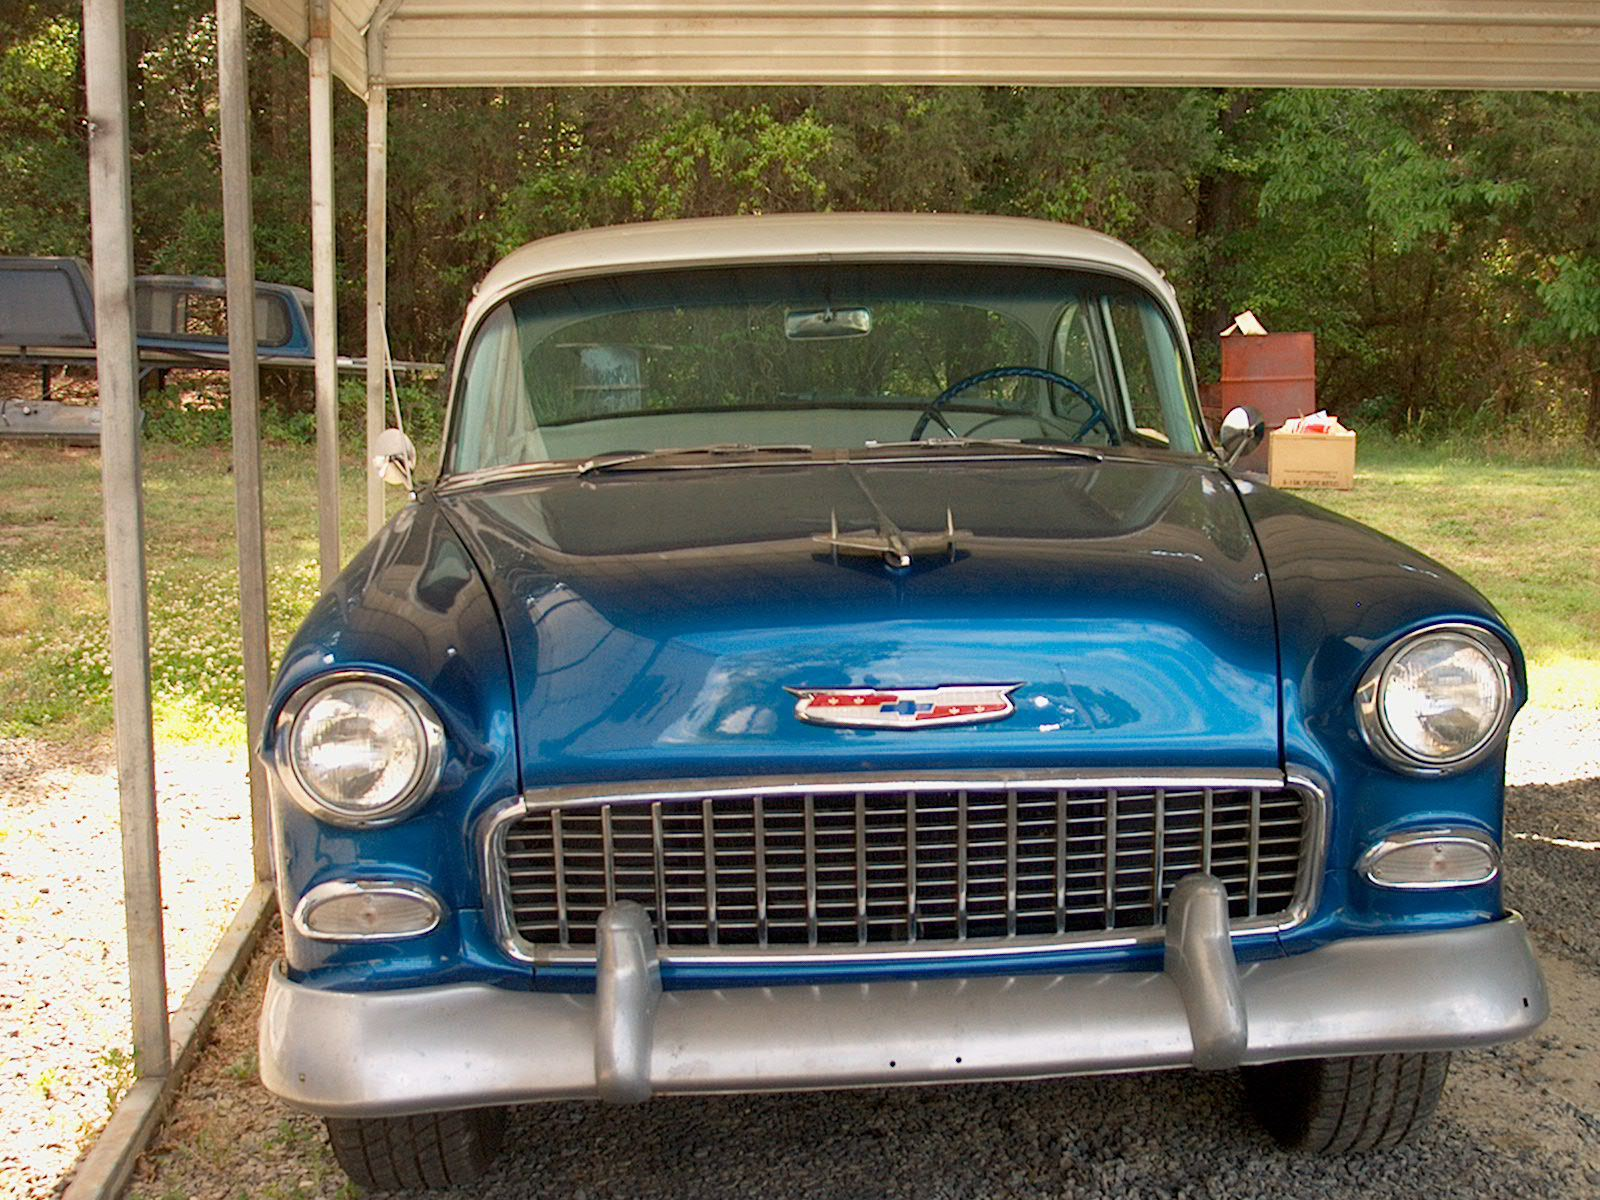 55-Chevy-front